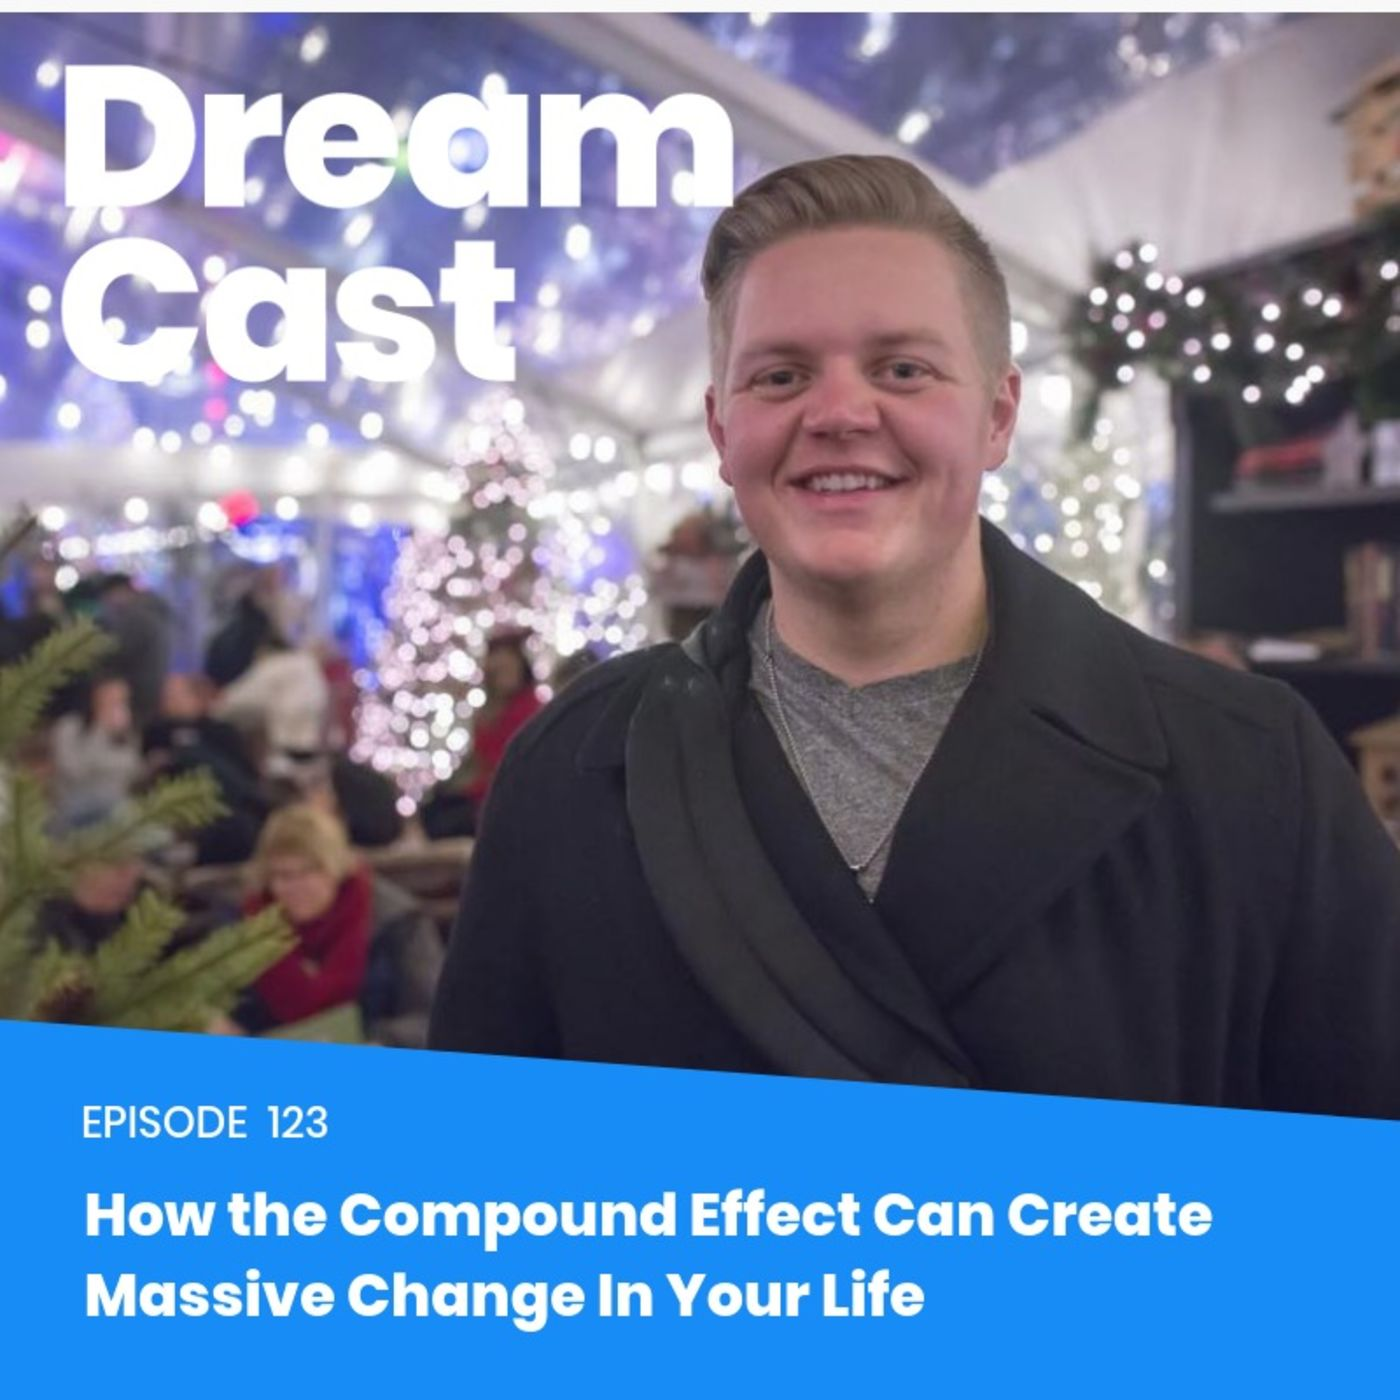 Episode 123 - How the Compound Effect Can Create Massive Change In Your Life with David Roden